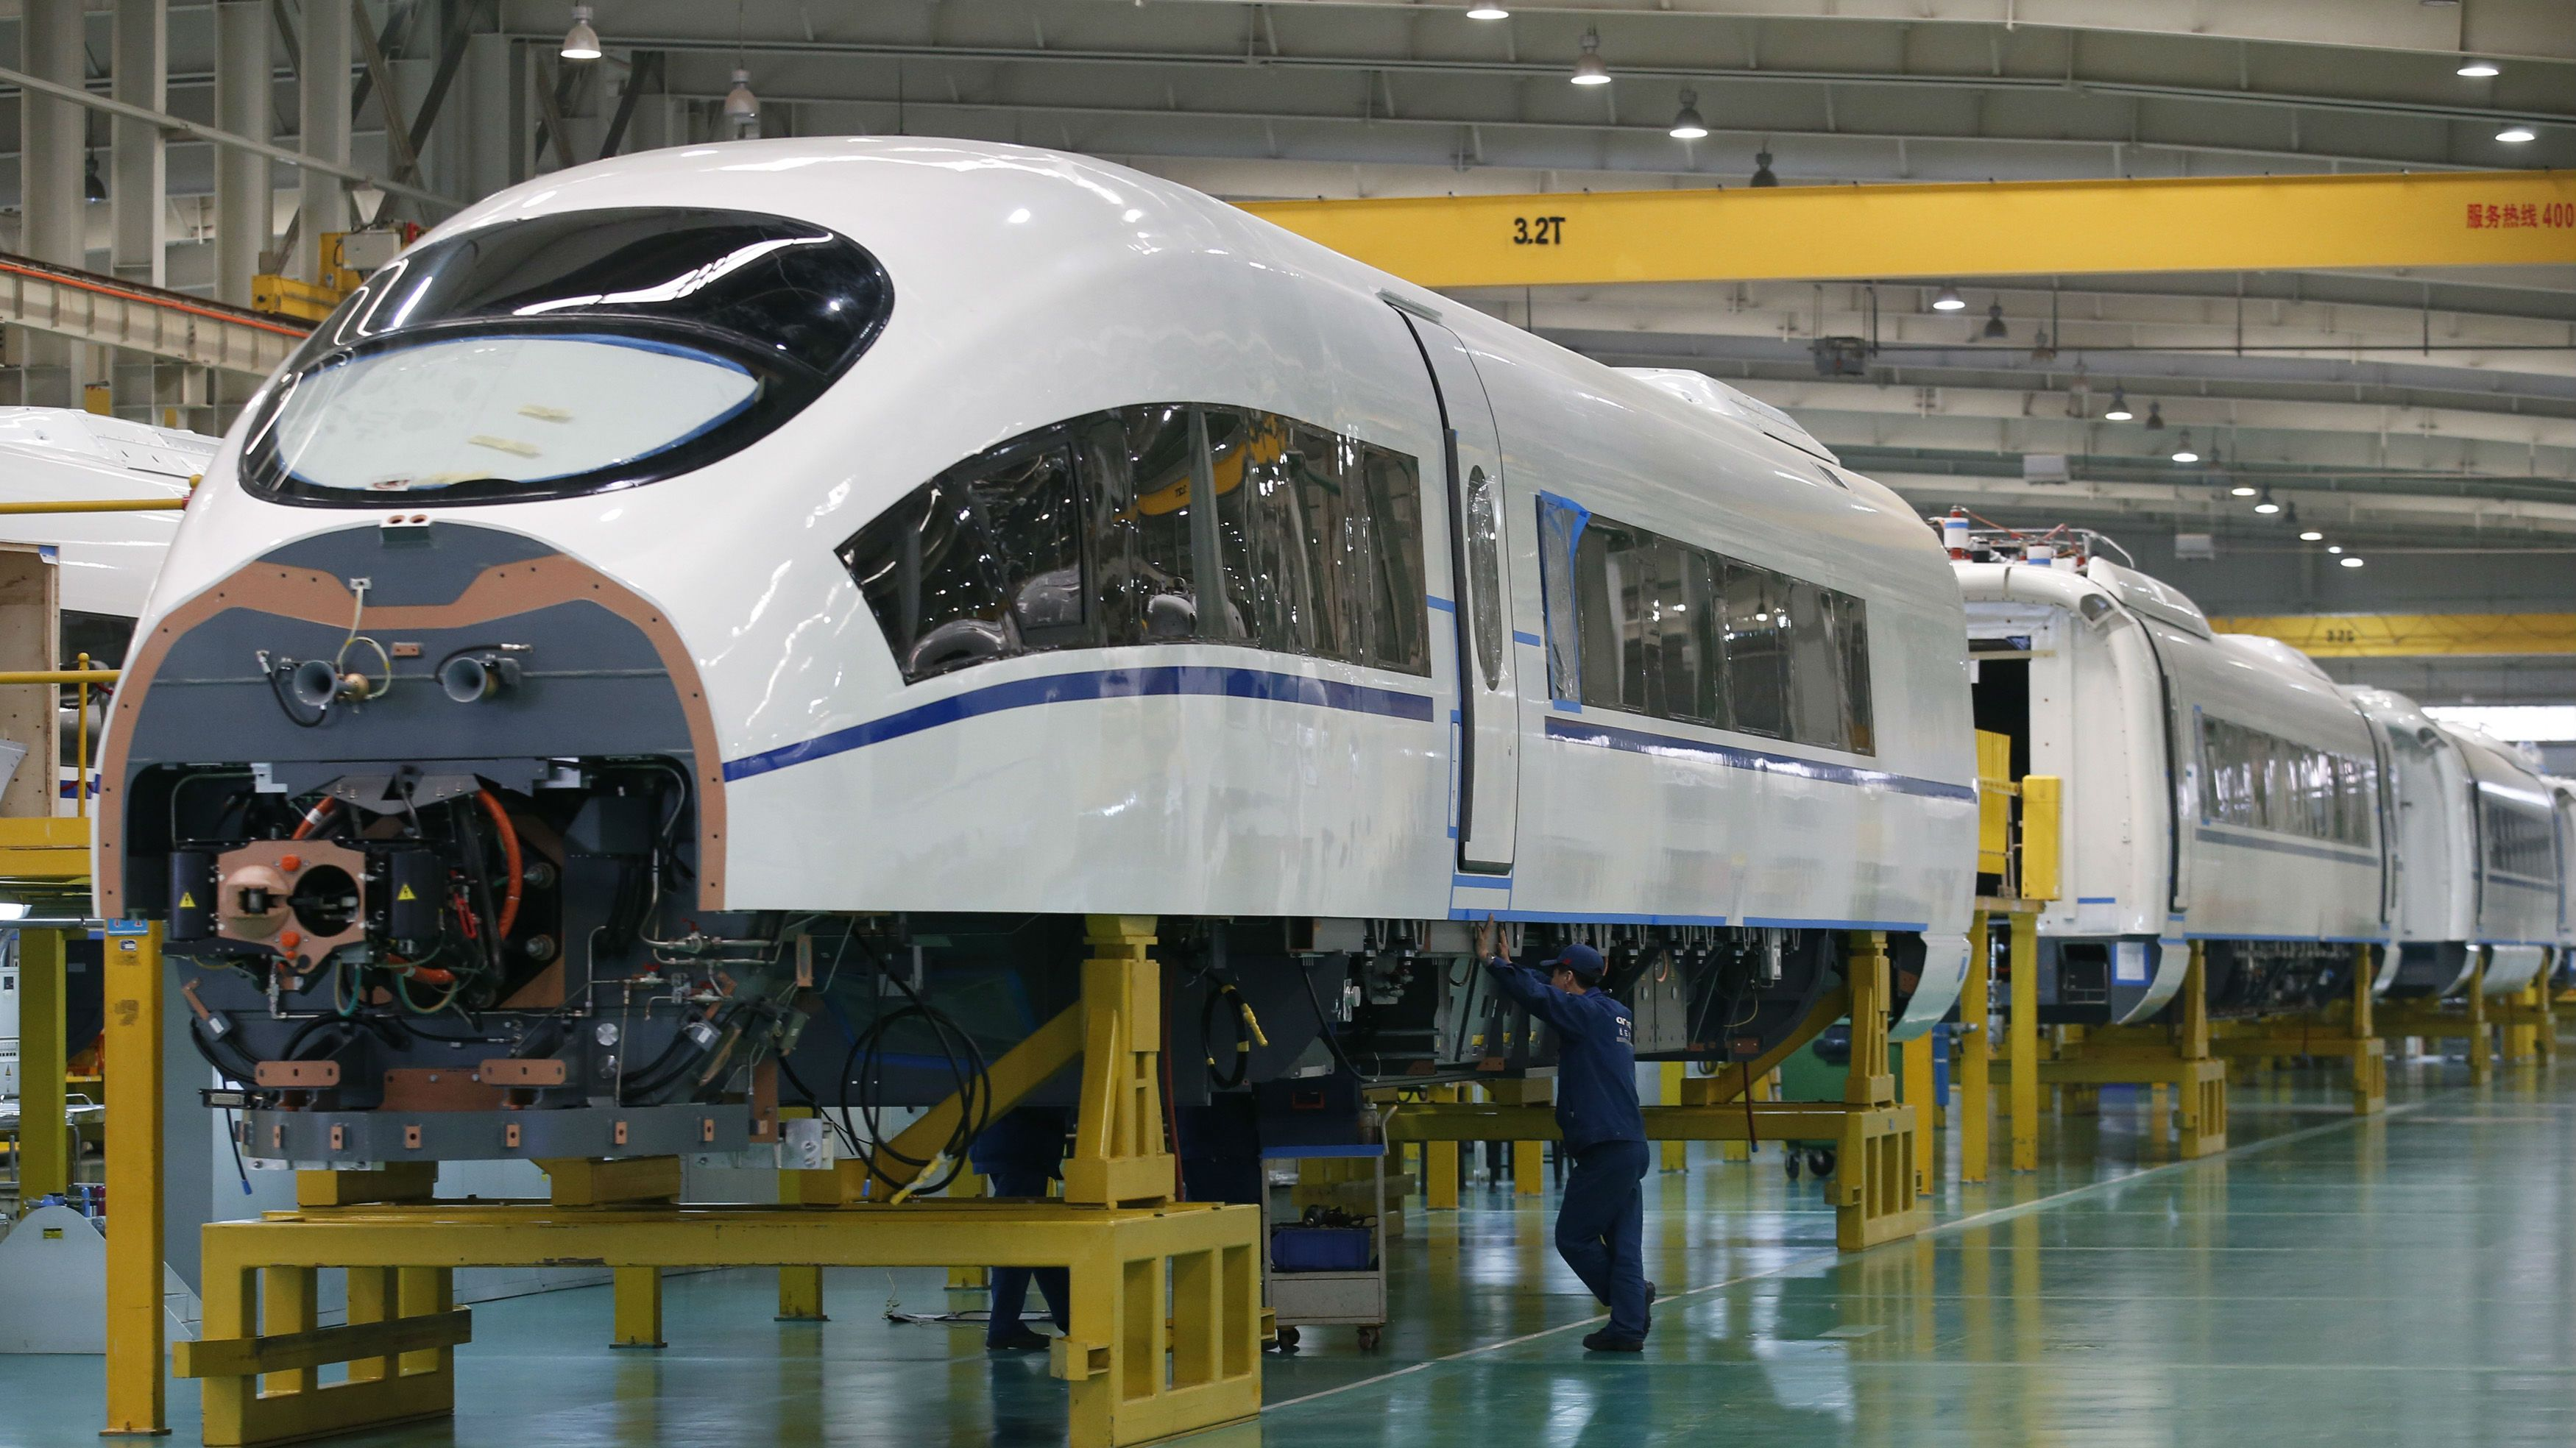 An employee works on a final assembly line for CRH380B, a high speed train model, at China CNR's Tangshan Railway Vehicle's factory in Tangshan, Hebei province, February 11, 2015. China CNR, one of the country's top trainmakers, said it was interested in buying foreign rail-linked technologies as China seeks to export its high-speed trains and rail expertise. REUTERS/Kim Kyung-Hoon (CHINA - Tags: SCIENCE TECHNOLOGY BUSINESS TRANSPORT)